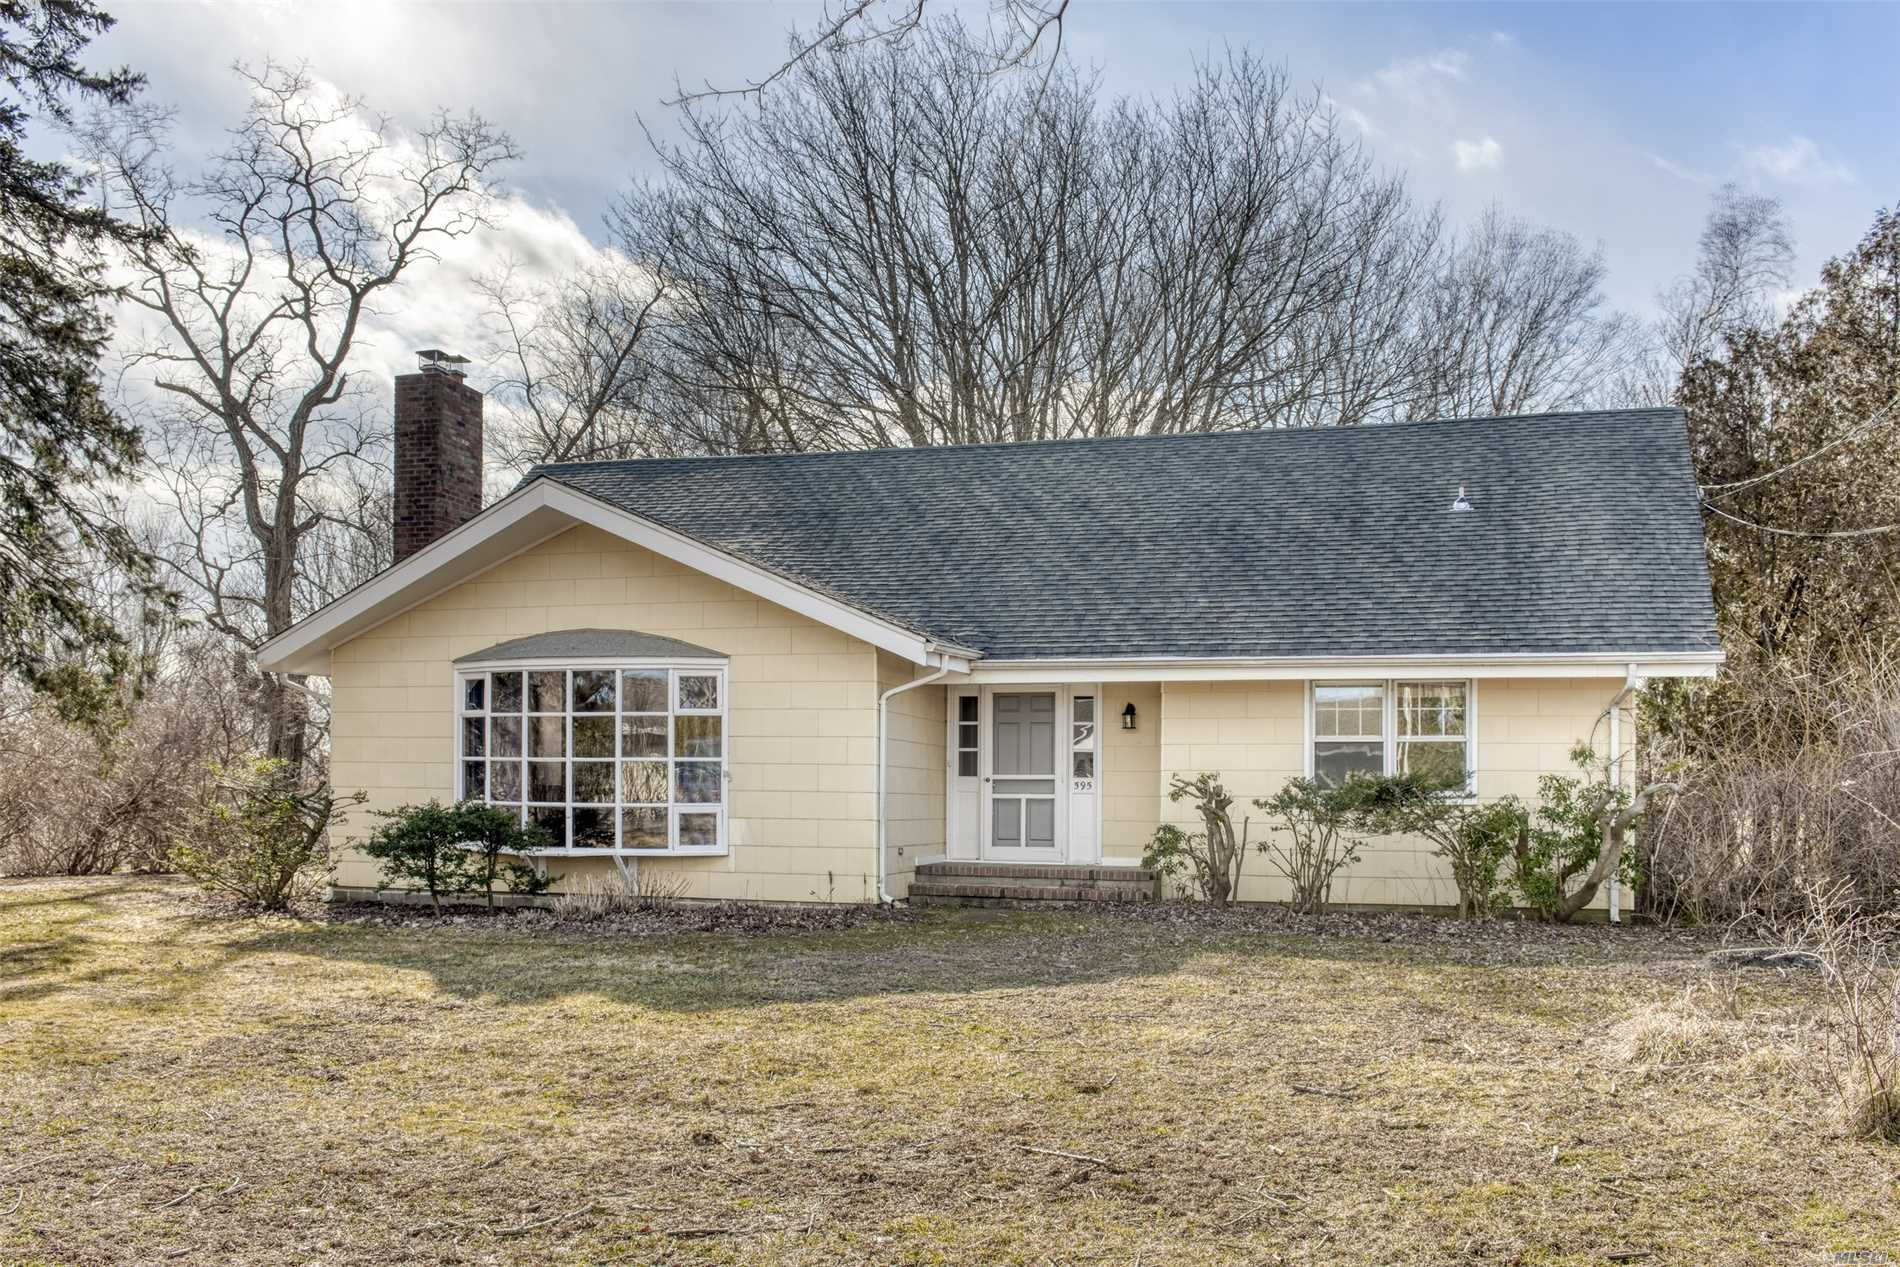 Mid Century style home in the heart of Orient Village. Large open common area, wood burning brick fireplace, hardwood floors, sun room, full basement. Close to all Village amenities - yacht club, marina & beaches. Room for a pool.